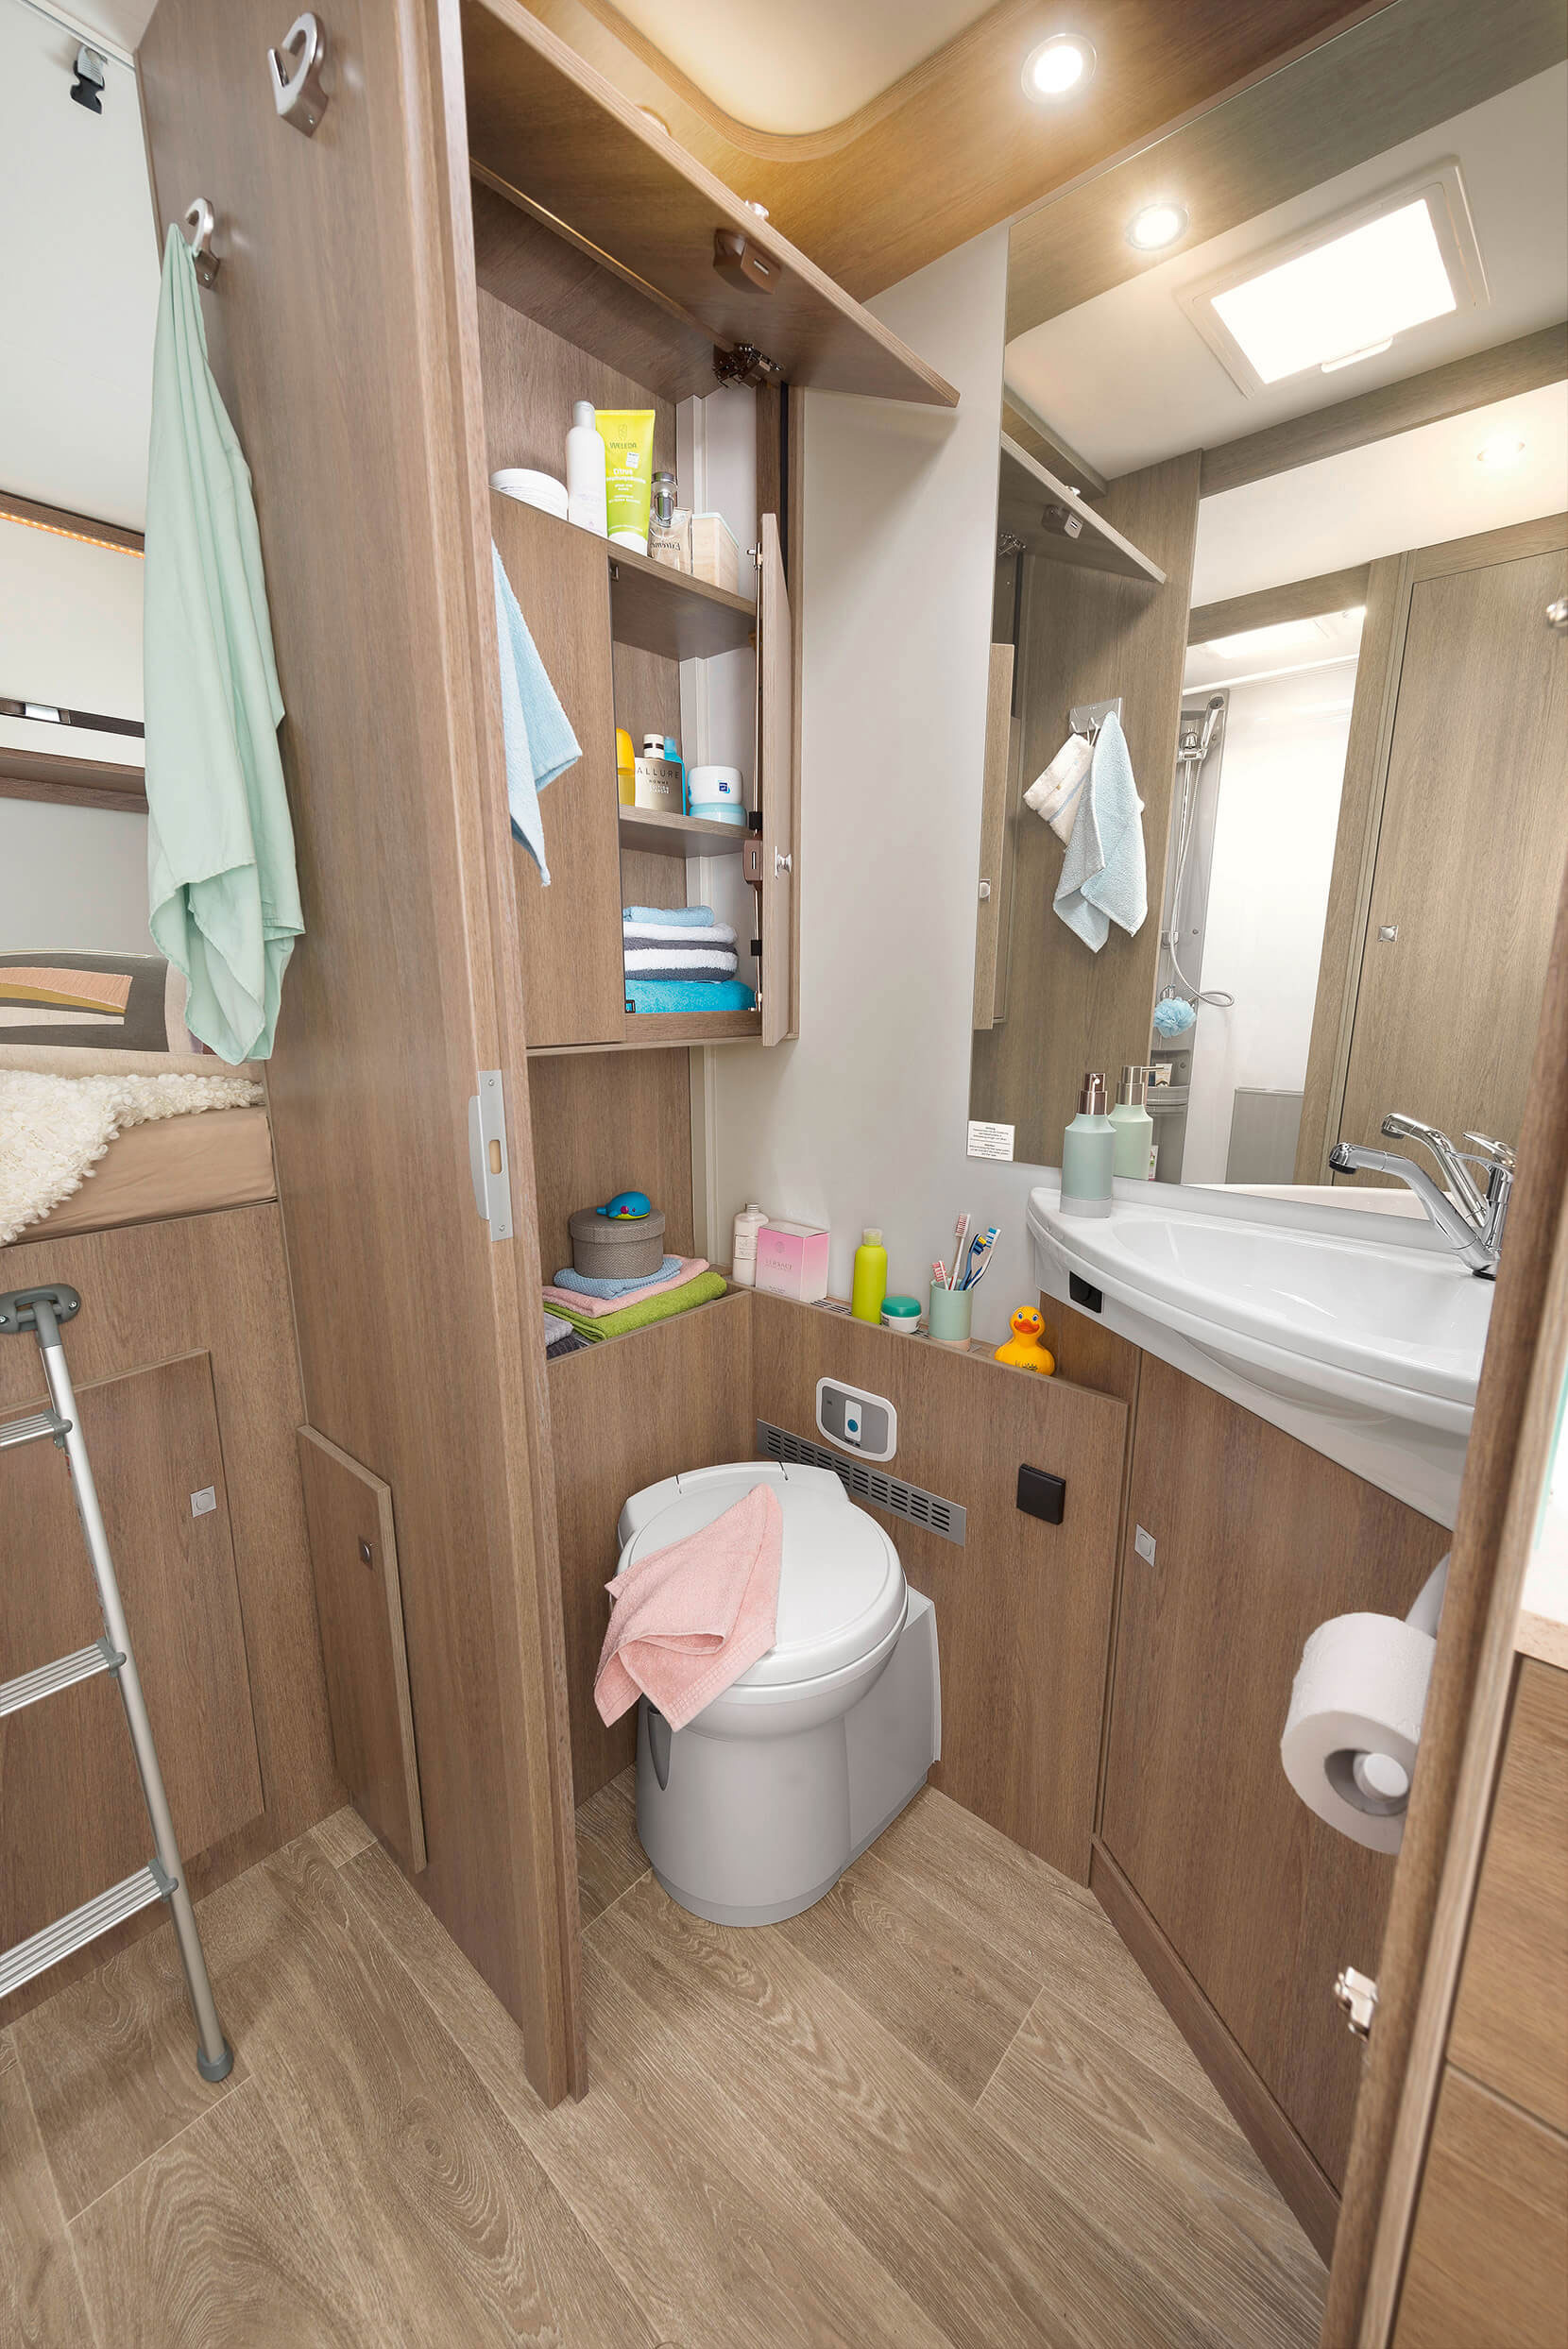 Large bathroom for the whole family with separate shower opposite • A 7877-2